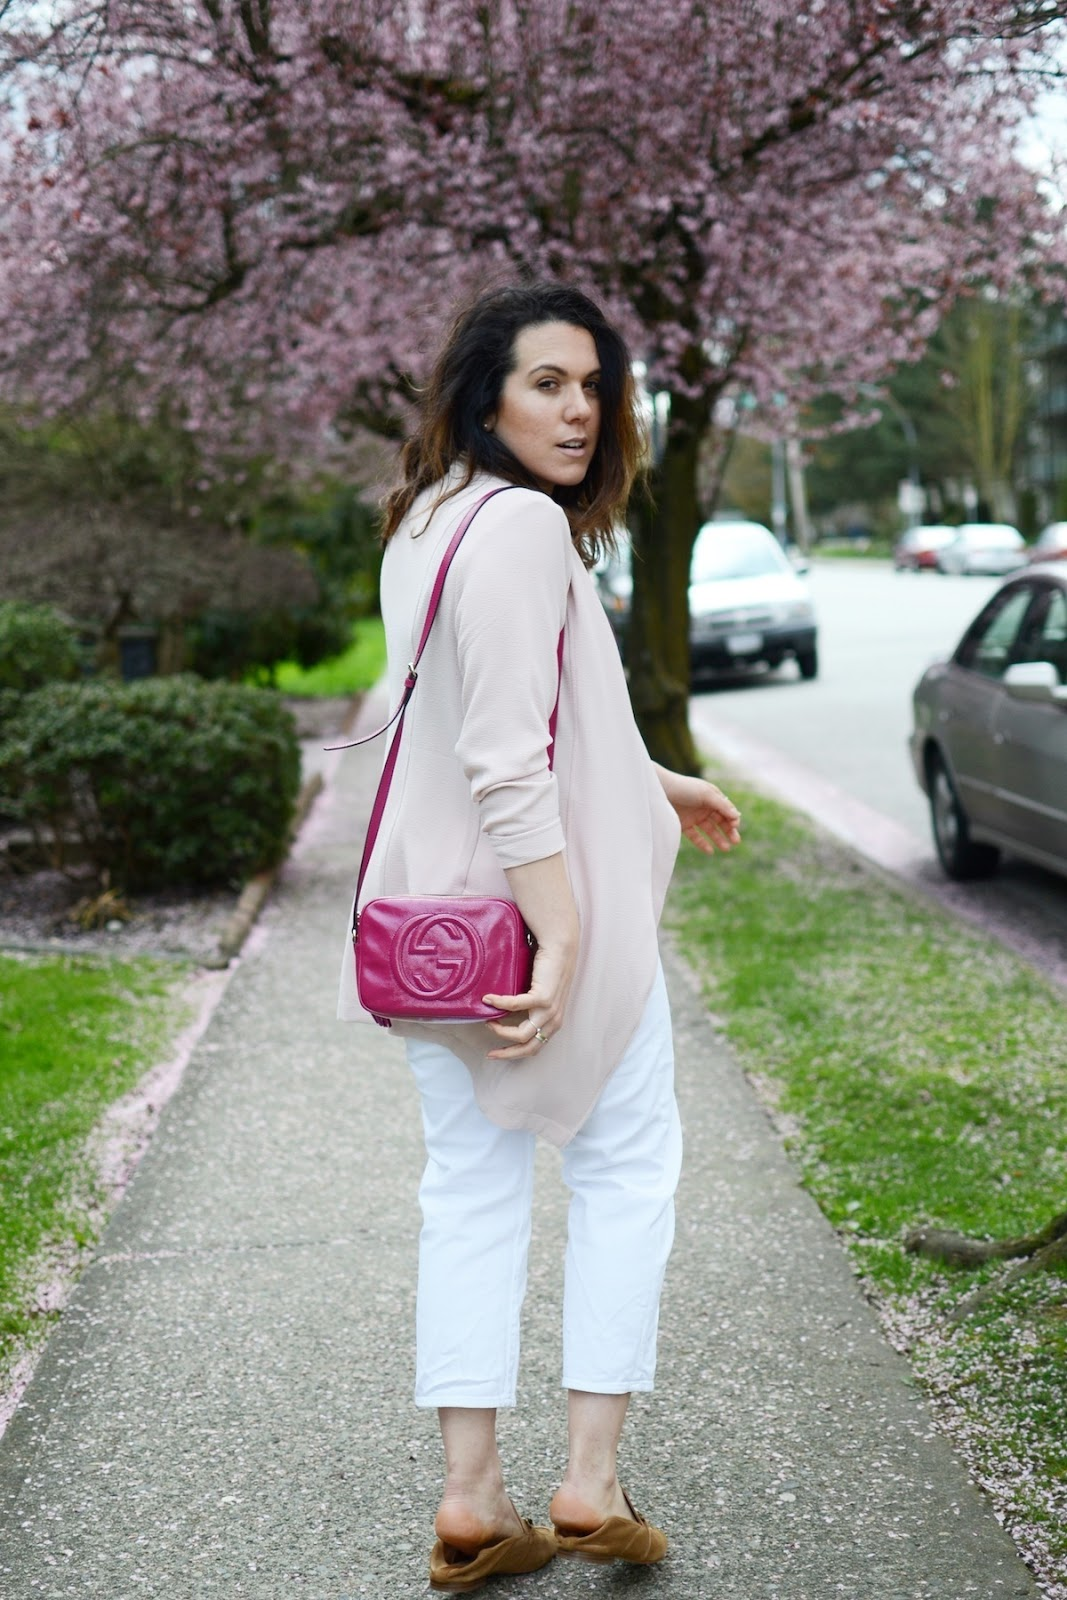 Le chateau blush trench coat outfit gucci disco bag vancouver blogger